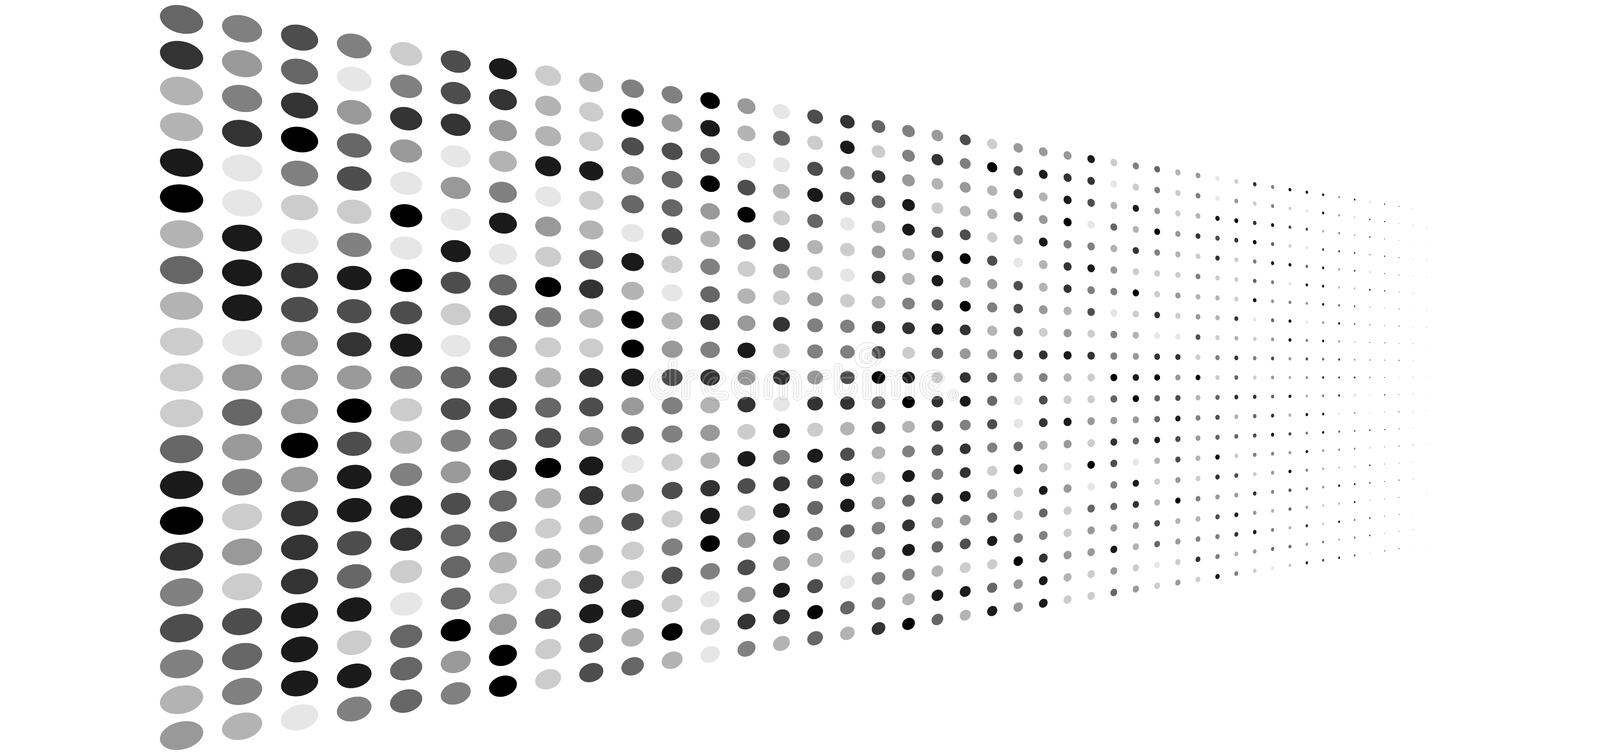 Grey, gray dots, half-tone element. Greyscale, grayscale speckle, stipple geometric pattern. greyscale circles halftone pattern. Polka dots, screntone design vector illustration